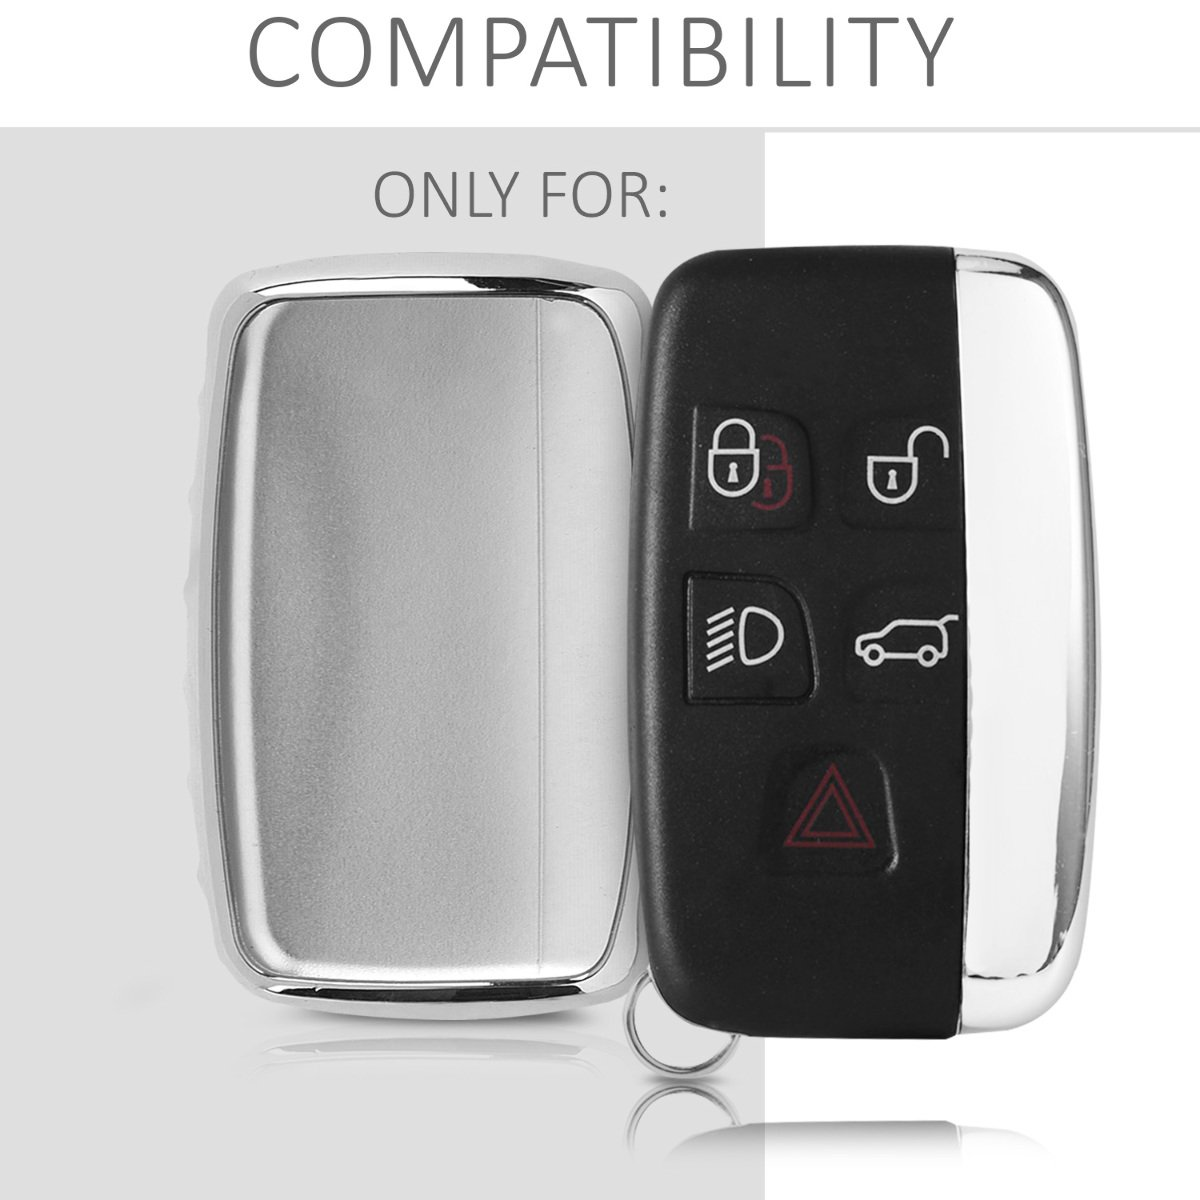 Silver High Gloss KW-Commerce 44263.94/_m000834 Soft TPU Silicone Protective Key Fob Cover for Land Rover Jaguar 5-Button Remote Car Key kwmobile Car Key Cover for Land Rover Jaguar